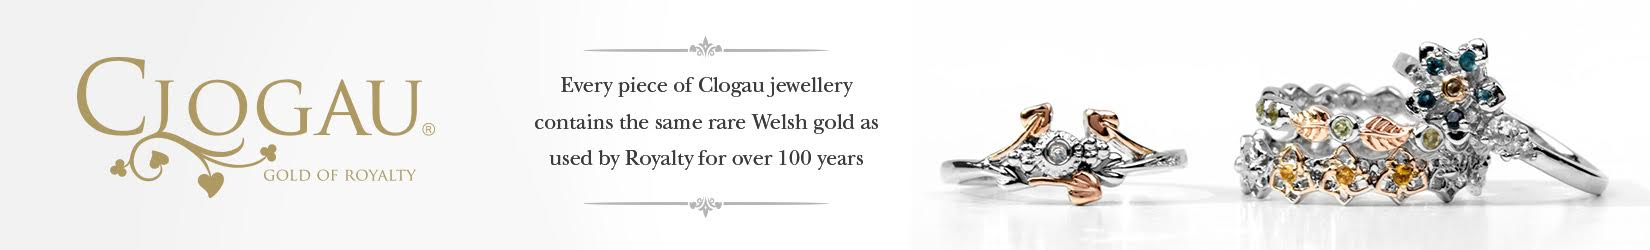 Read more about Clogau